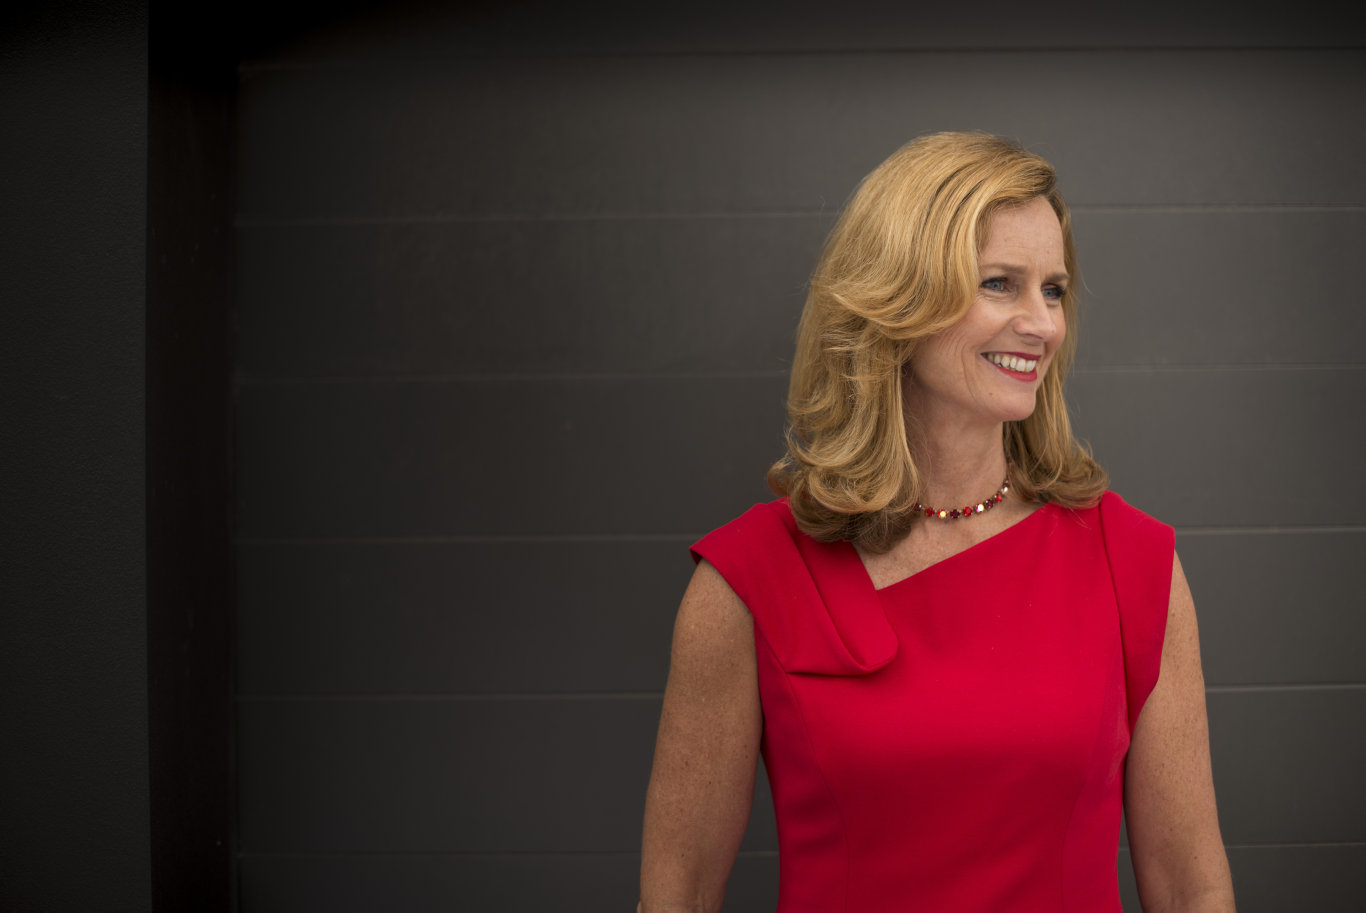 Naomi Simson from Shark Tank has joined us for our Business Class series.